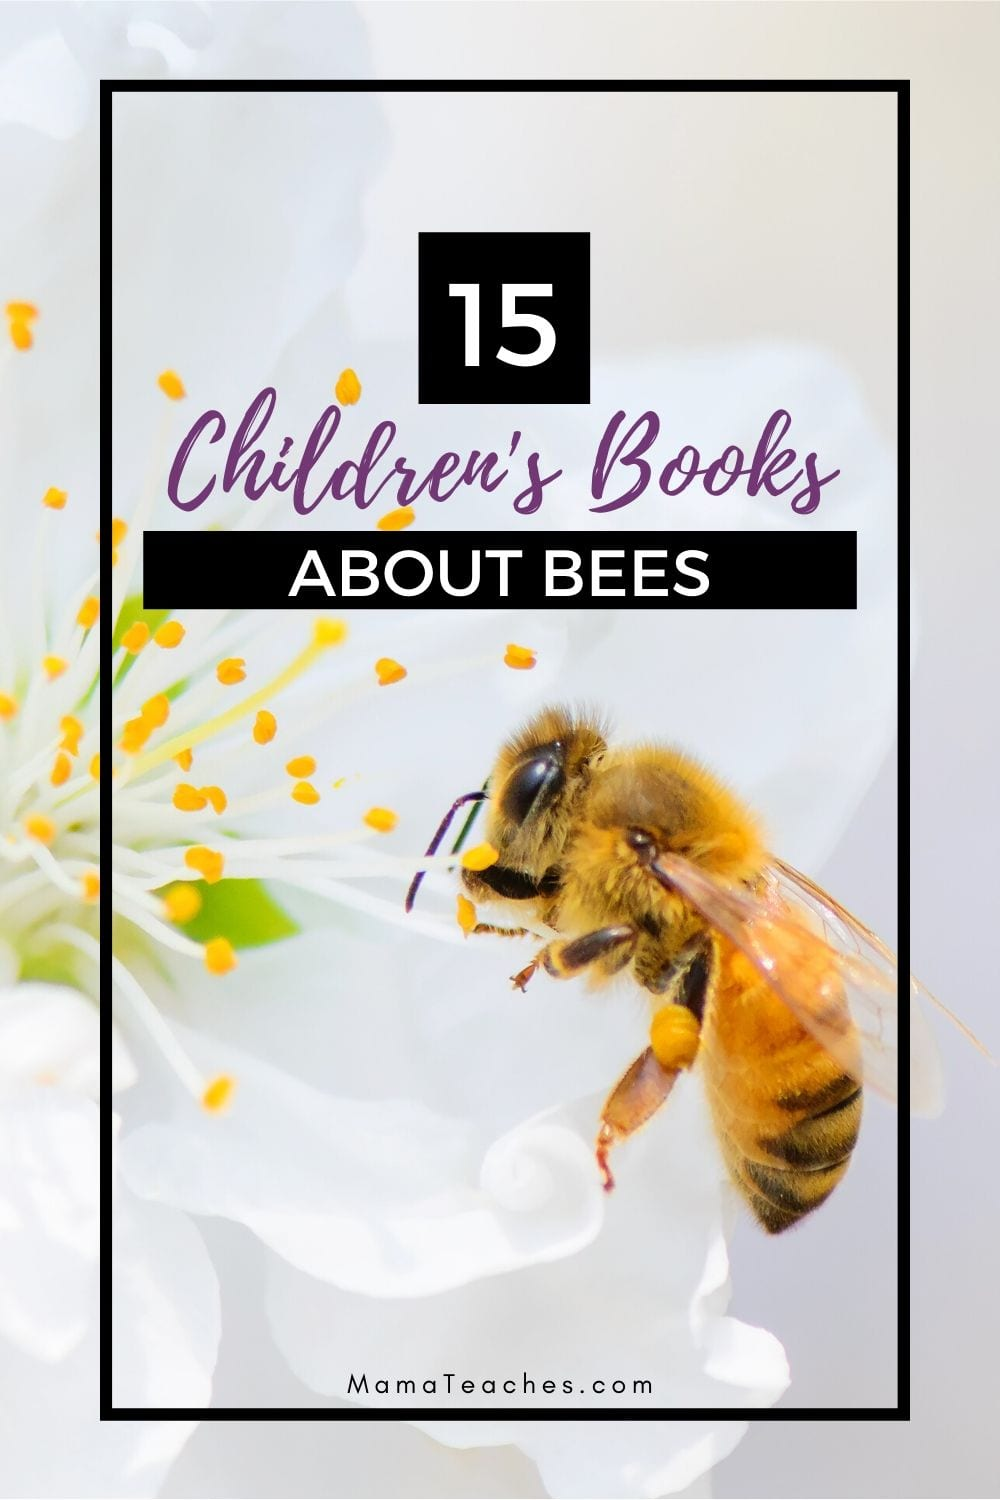 15 Fun Childrens Books About Bees to Read This Summer- MamaTeaches.com